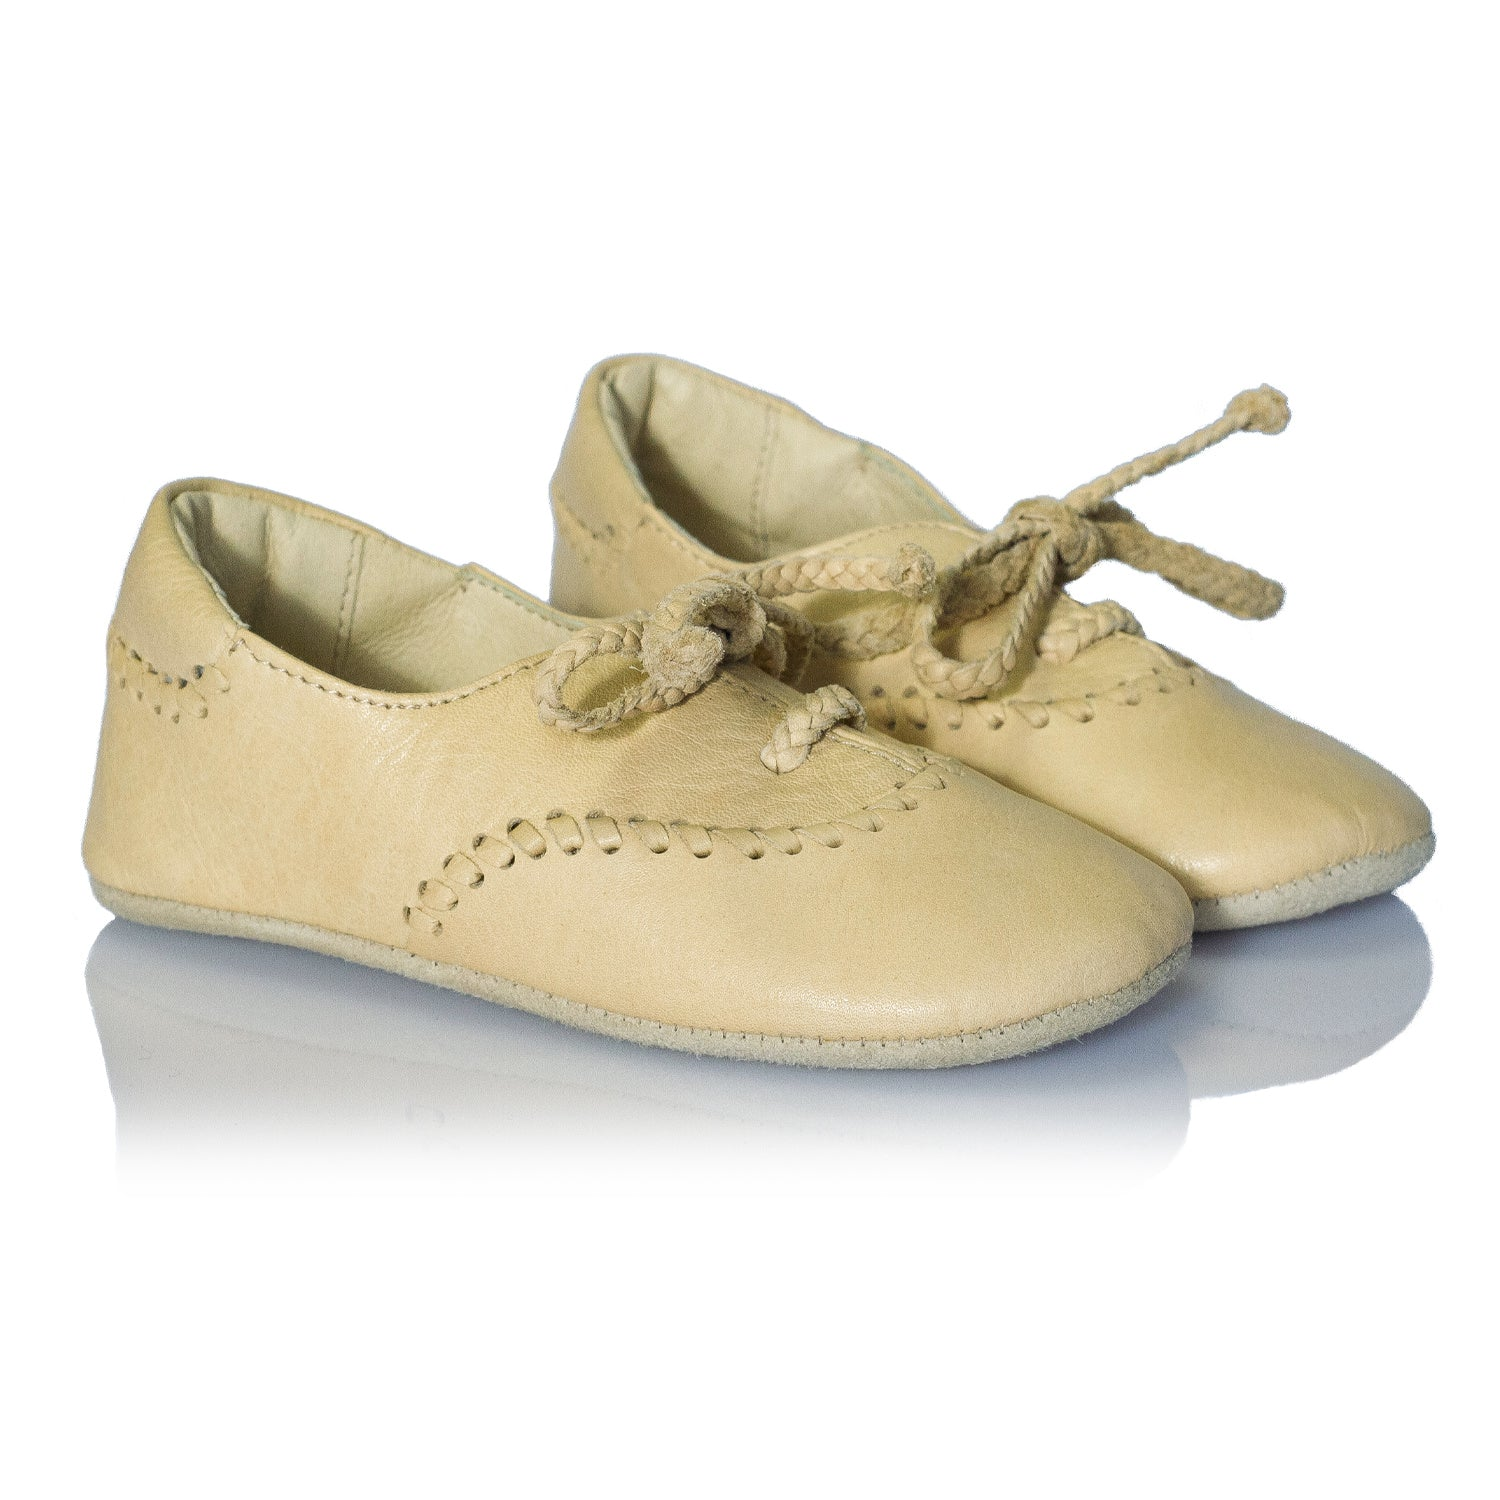 Vibys-Soft-Leather-Baby-Oxford-flats-Leslie-pair-view